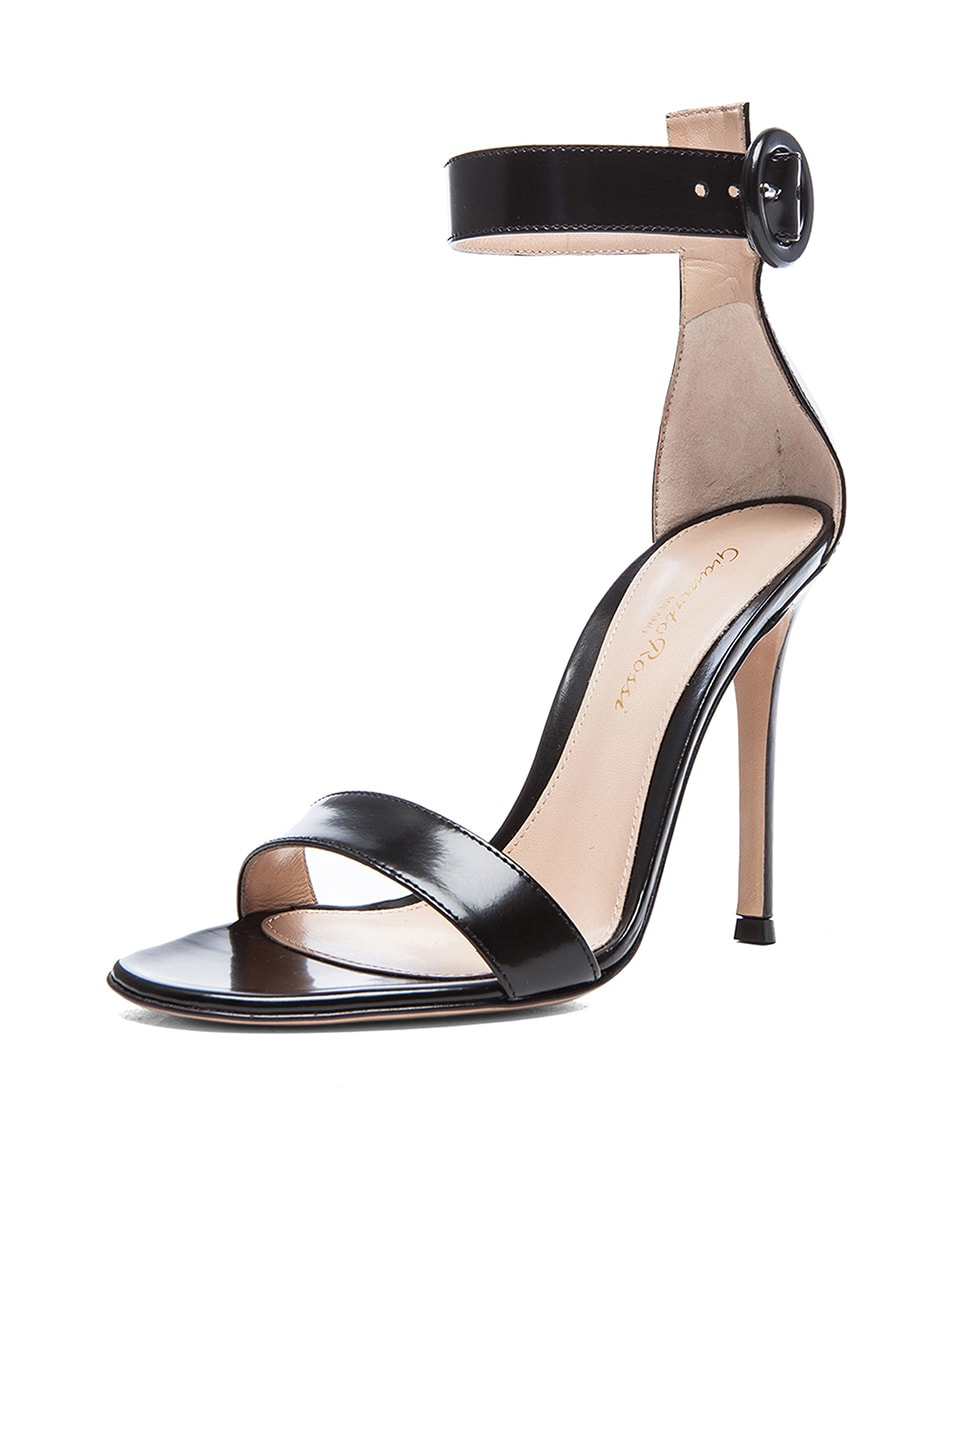 Image 2 of Gianvito Rossi Patent Portofino Heels in Black